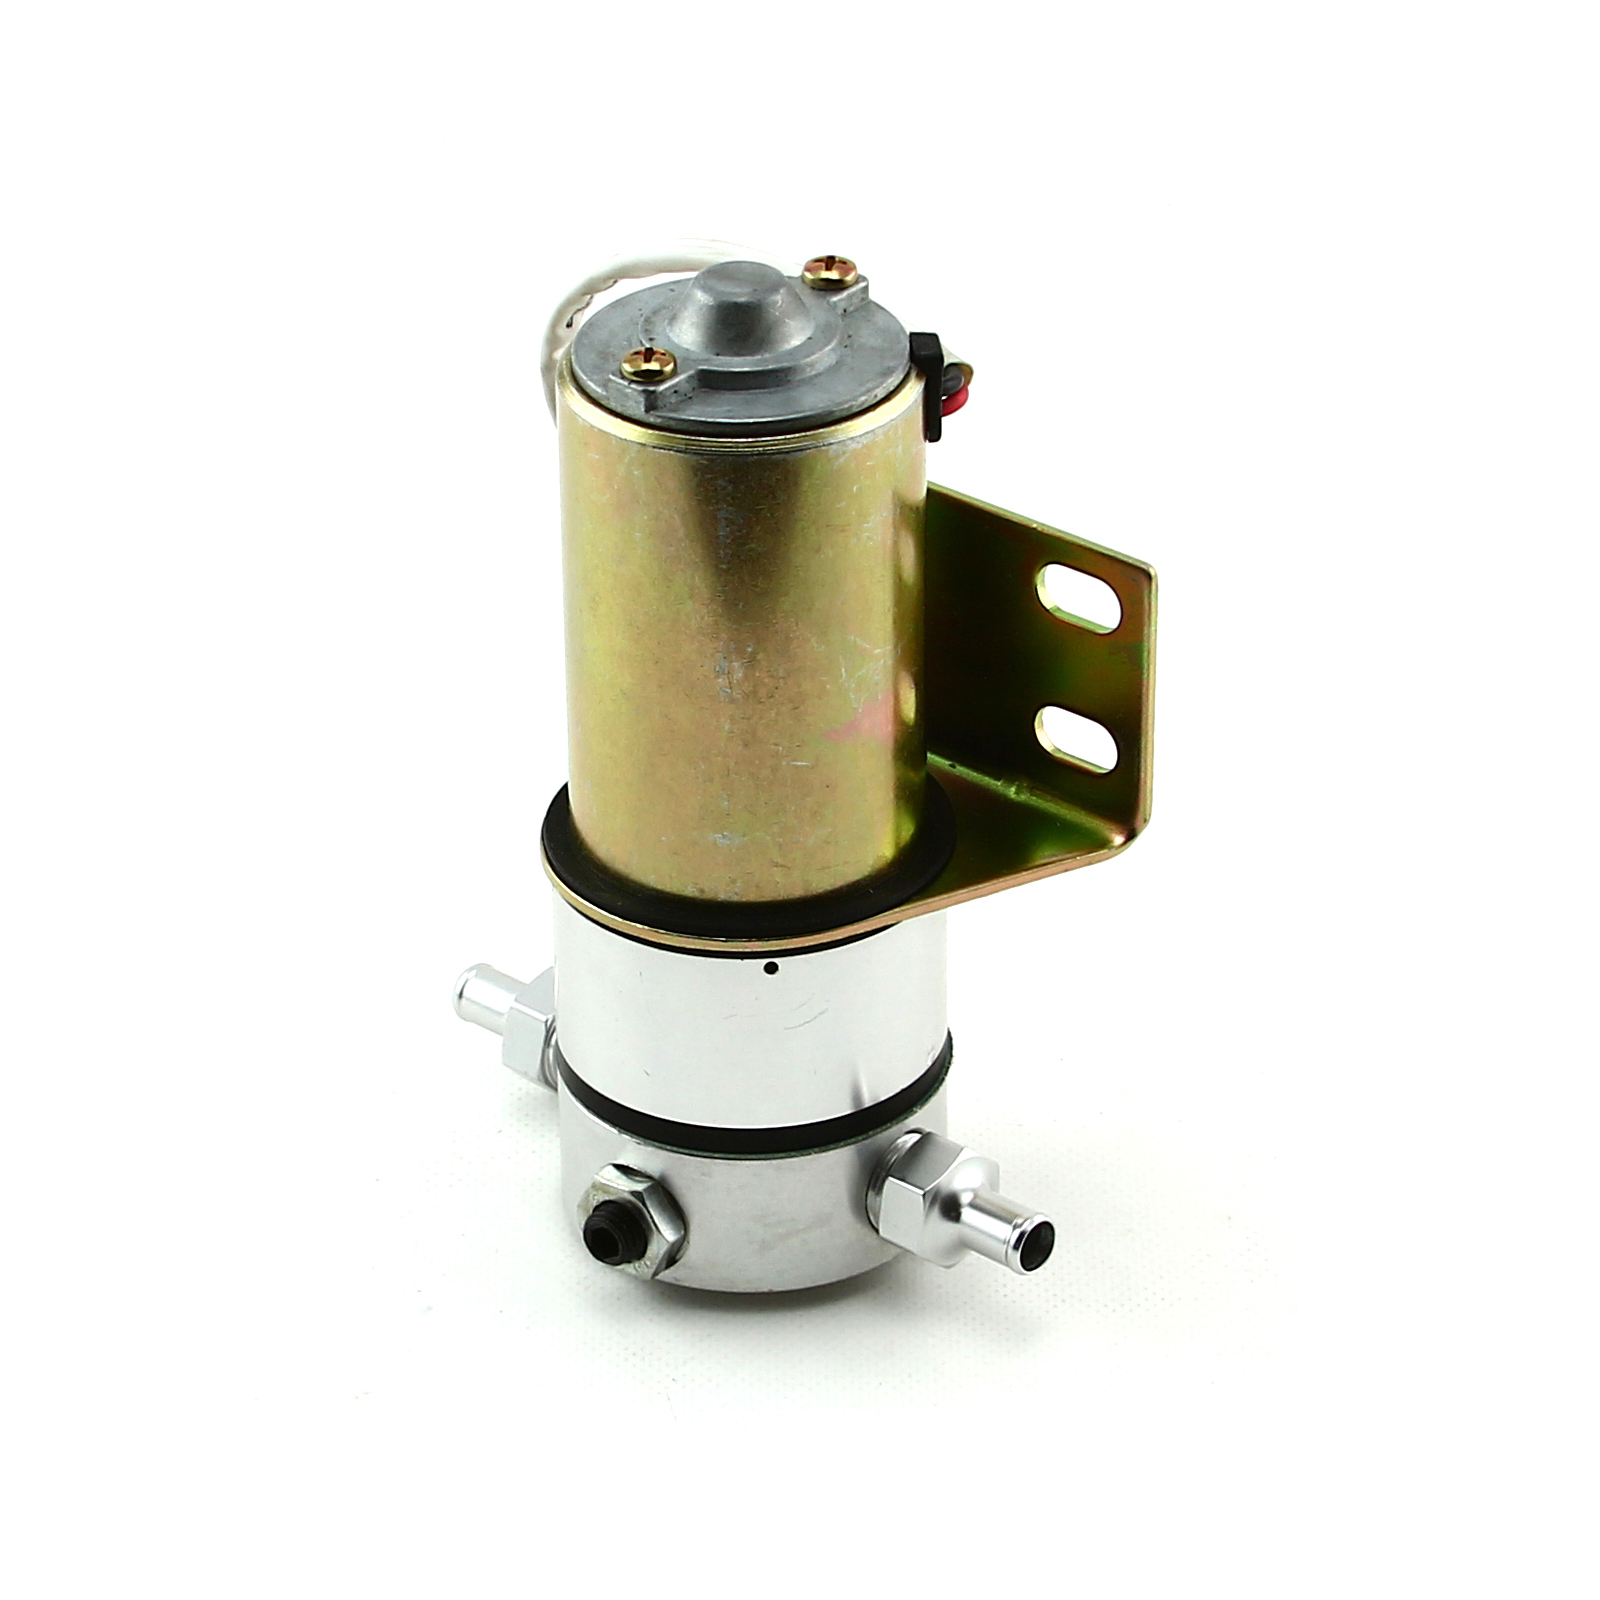 160 Gph @ 7 PSI With Int. Reg Universal Electric Fuel Pump